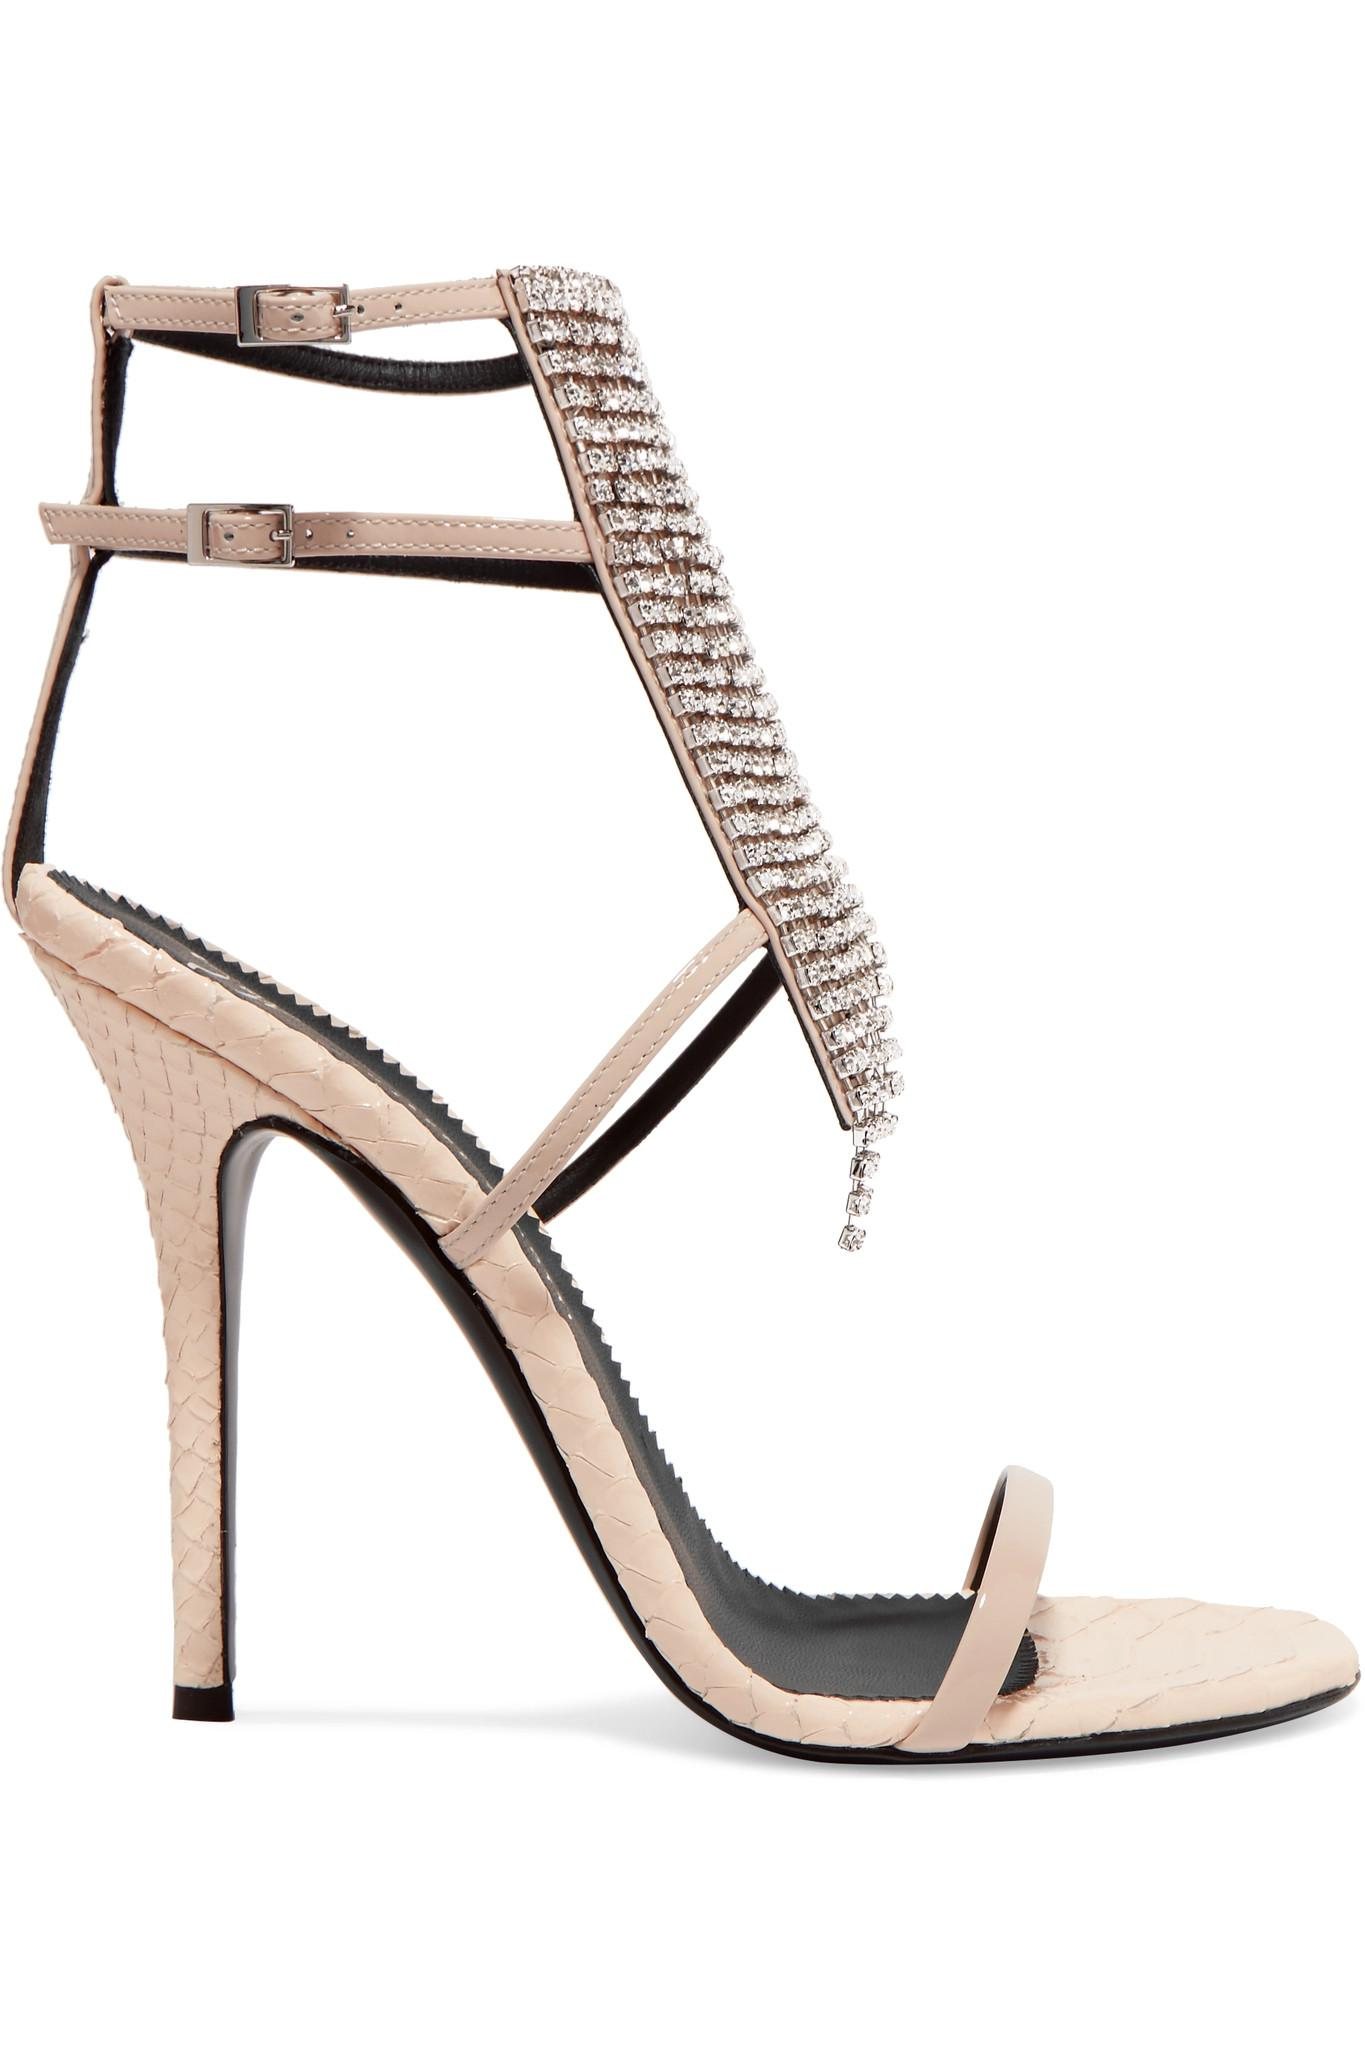 cfb1e411605d76 Giuseppe Zanotti. Women s Natural Alien Crystal-embellished Python-effect  And Patent-leather Sandals